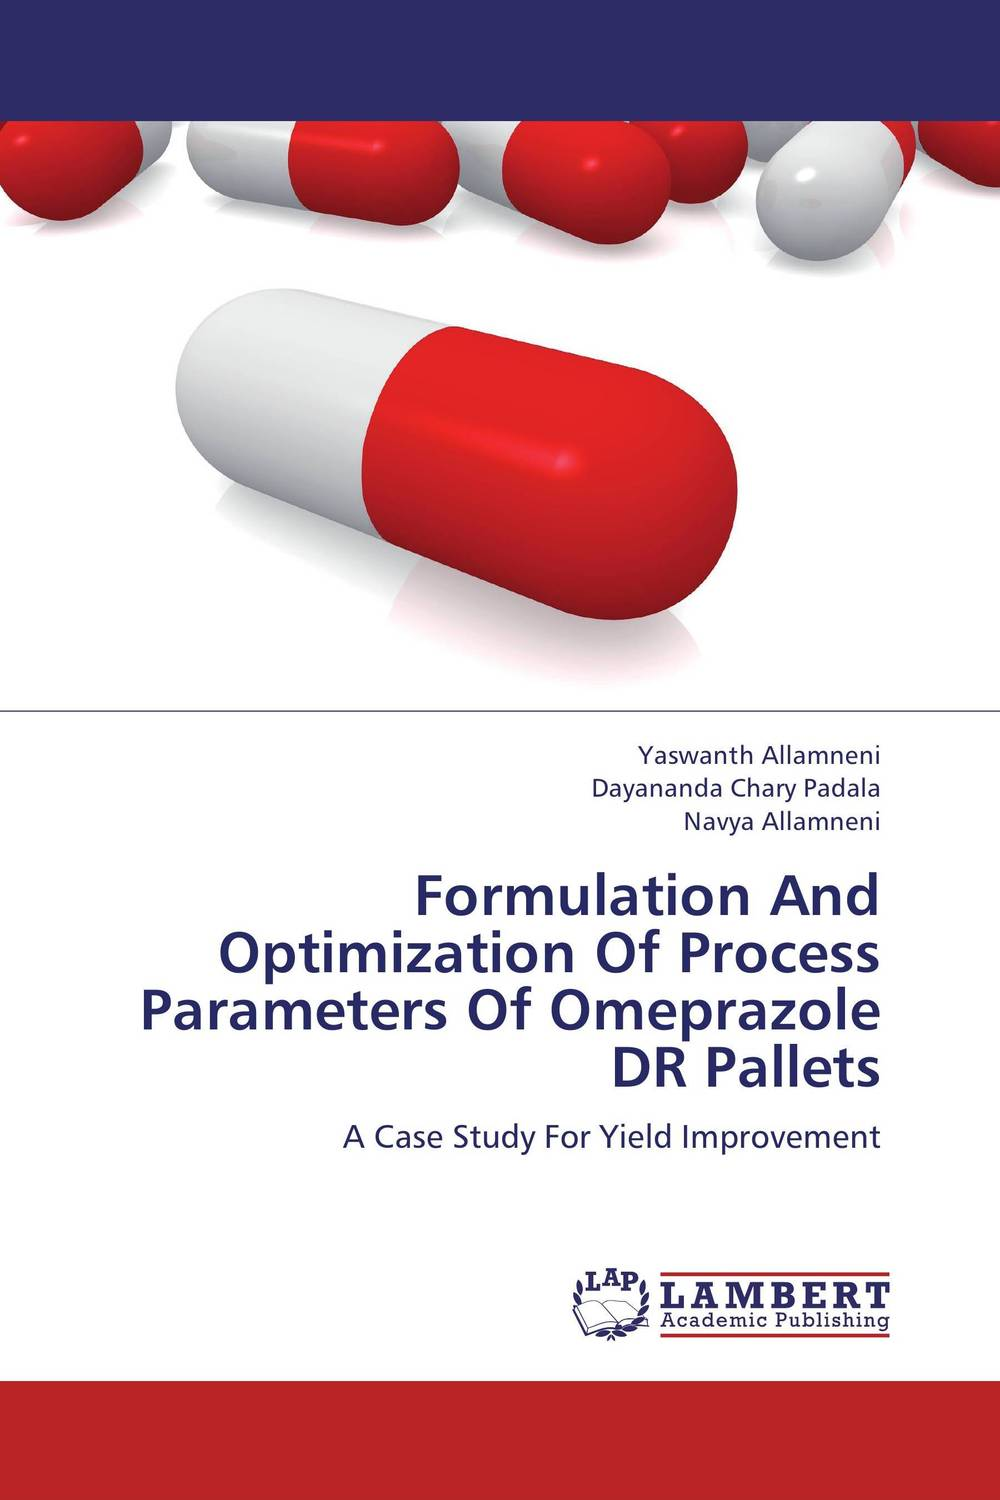 Formulation And Optimization Of Process Parameters Of Omeprazole DR Pallets amita yadav kamal singh rathore and geeta m patel formulation evaluation and optimization of mouth dissolving tablets